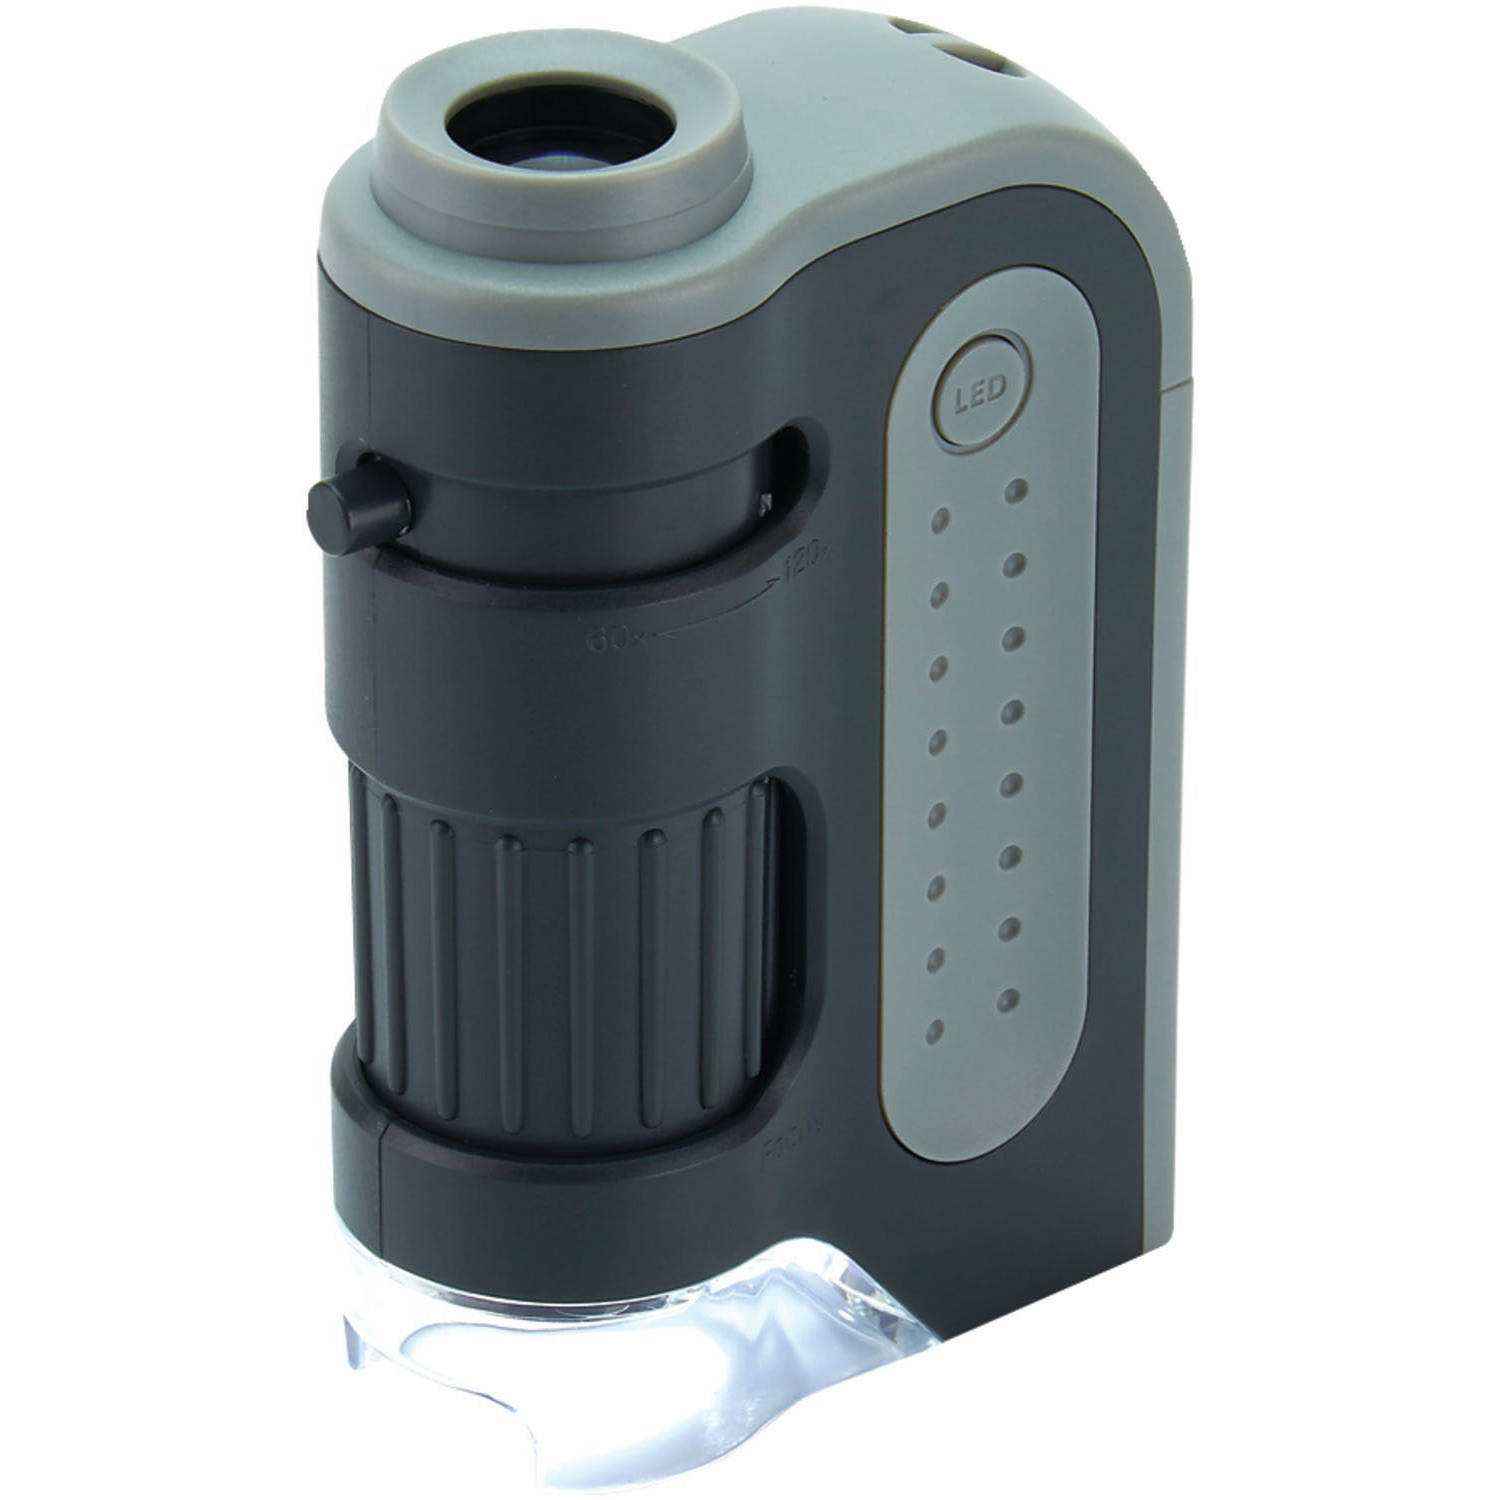 Carson MM-300 Microbrite Plus 60x - 120x LED Pocket Microscope